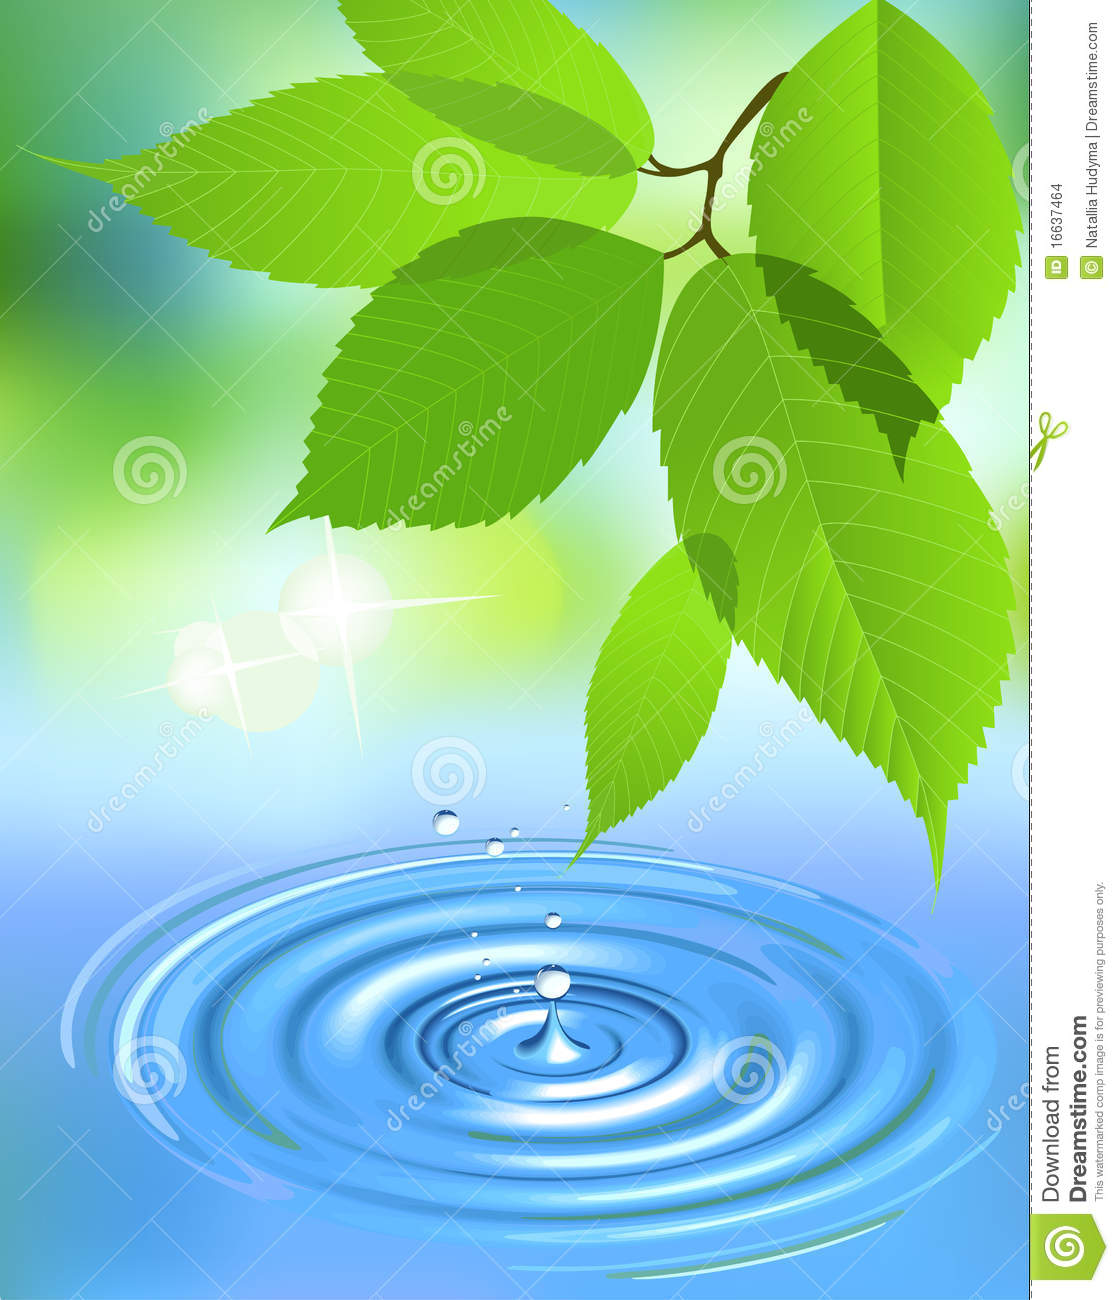 Raindrop Wallpaper Iphone X Water Splash And Leaves Stock Vector Image Of Image